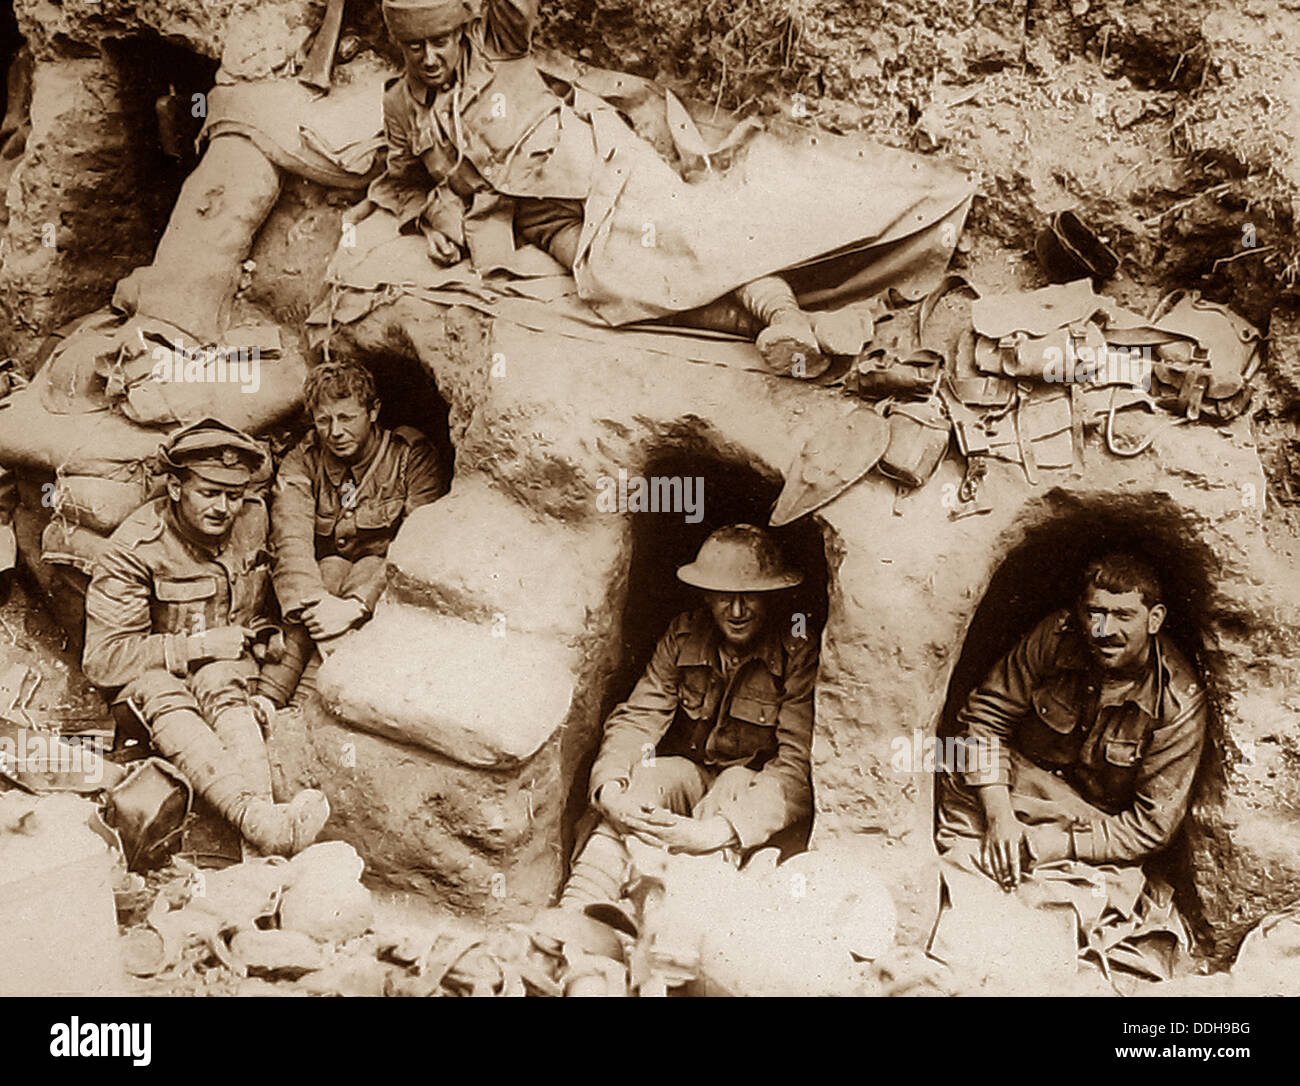 British troops in captured German dug-outs during WW1 - Stock Image